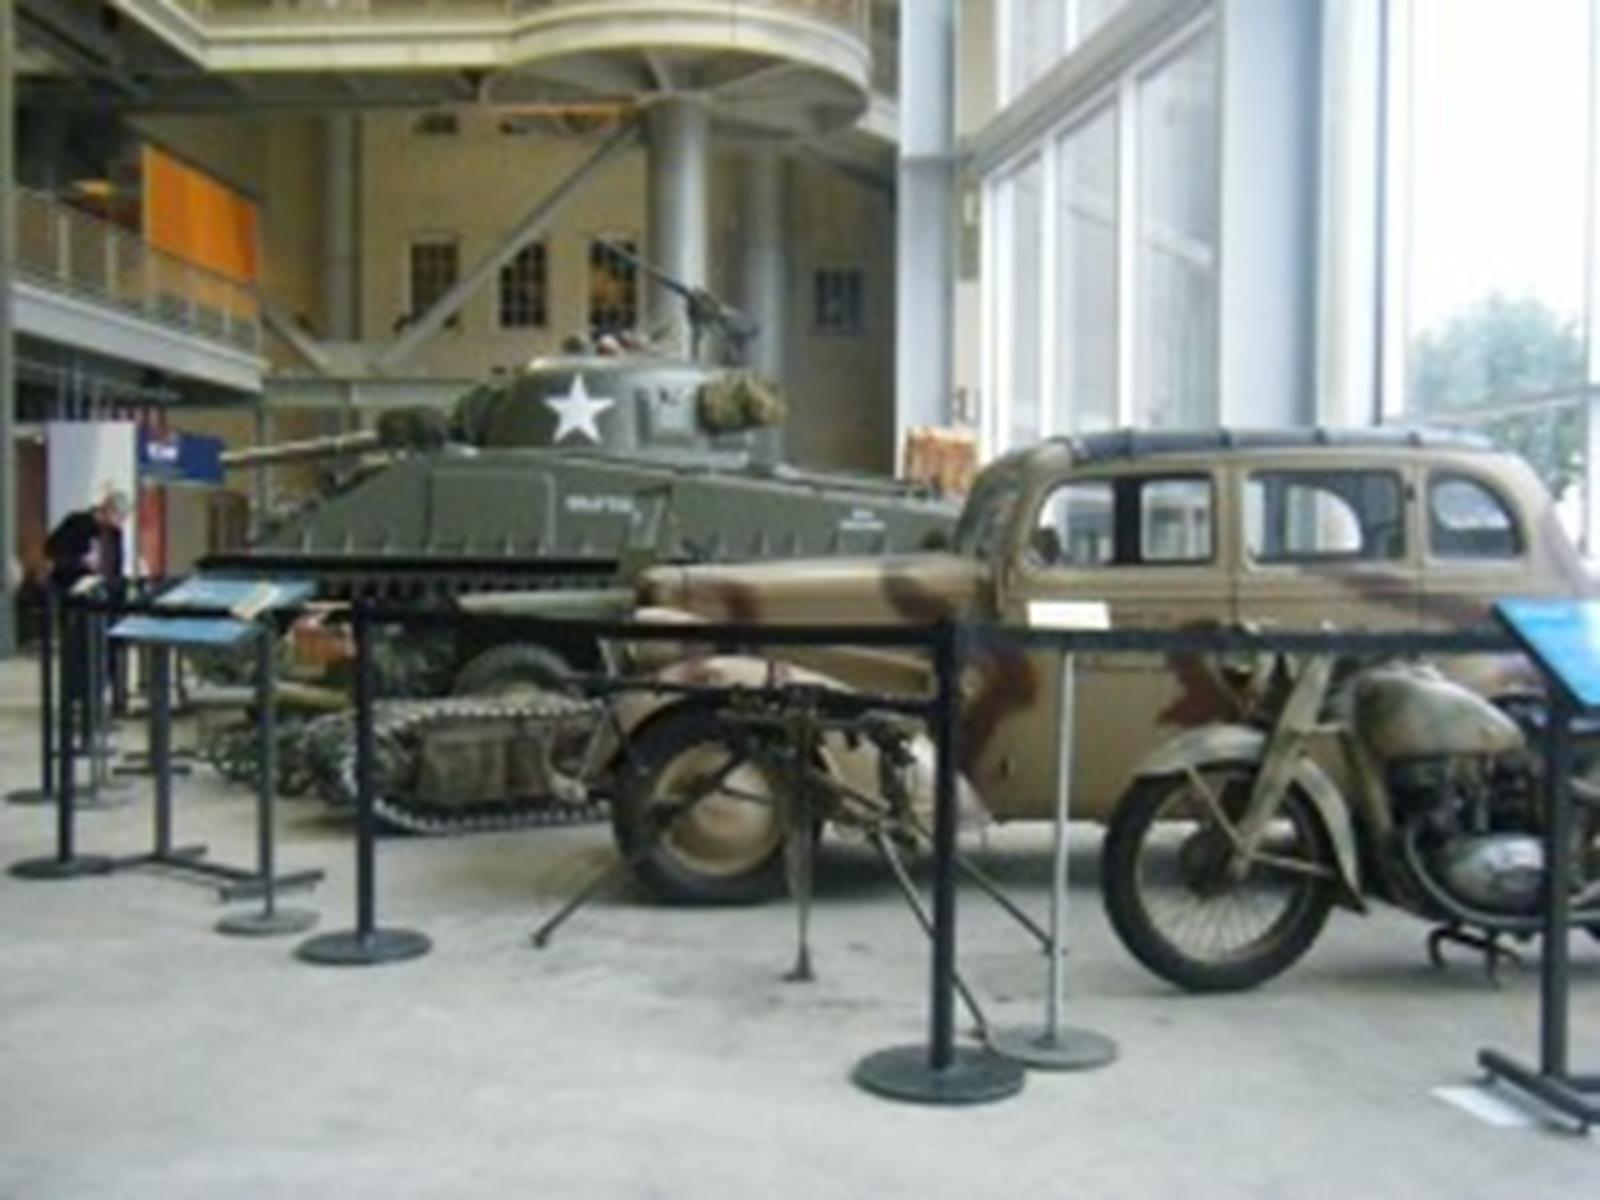 Military vehicles in the National World War II Museum, New Orleans